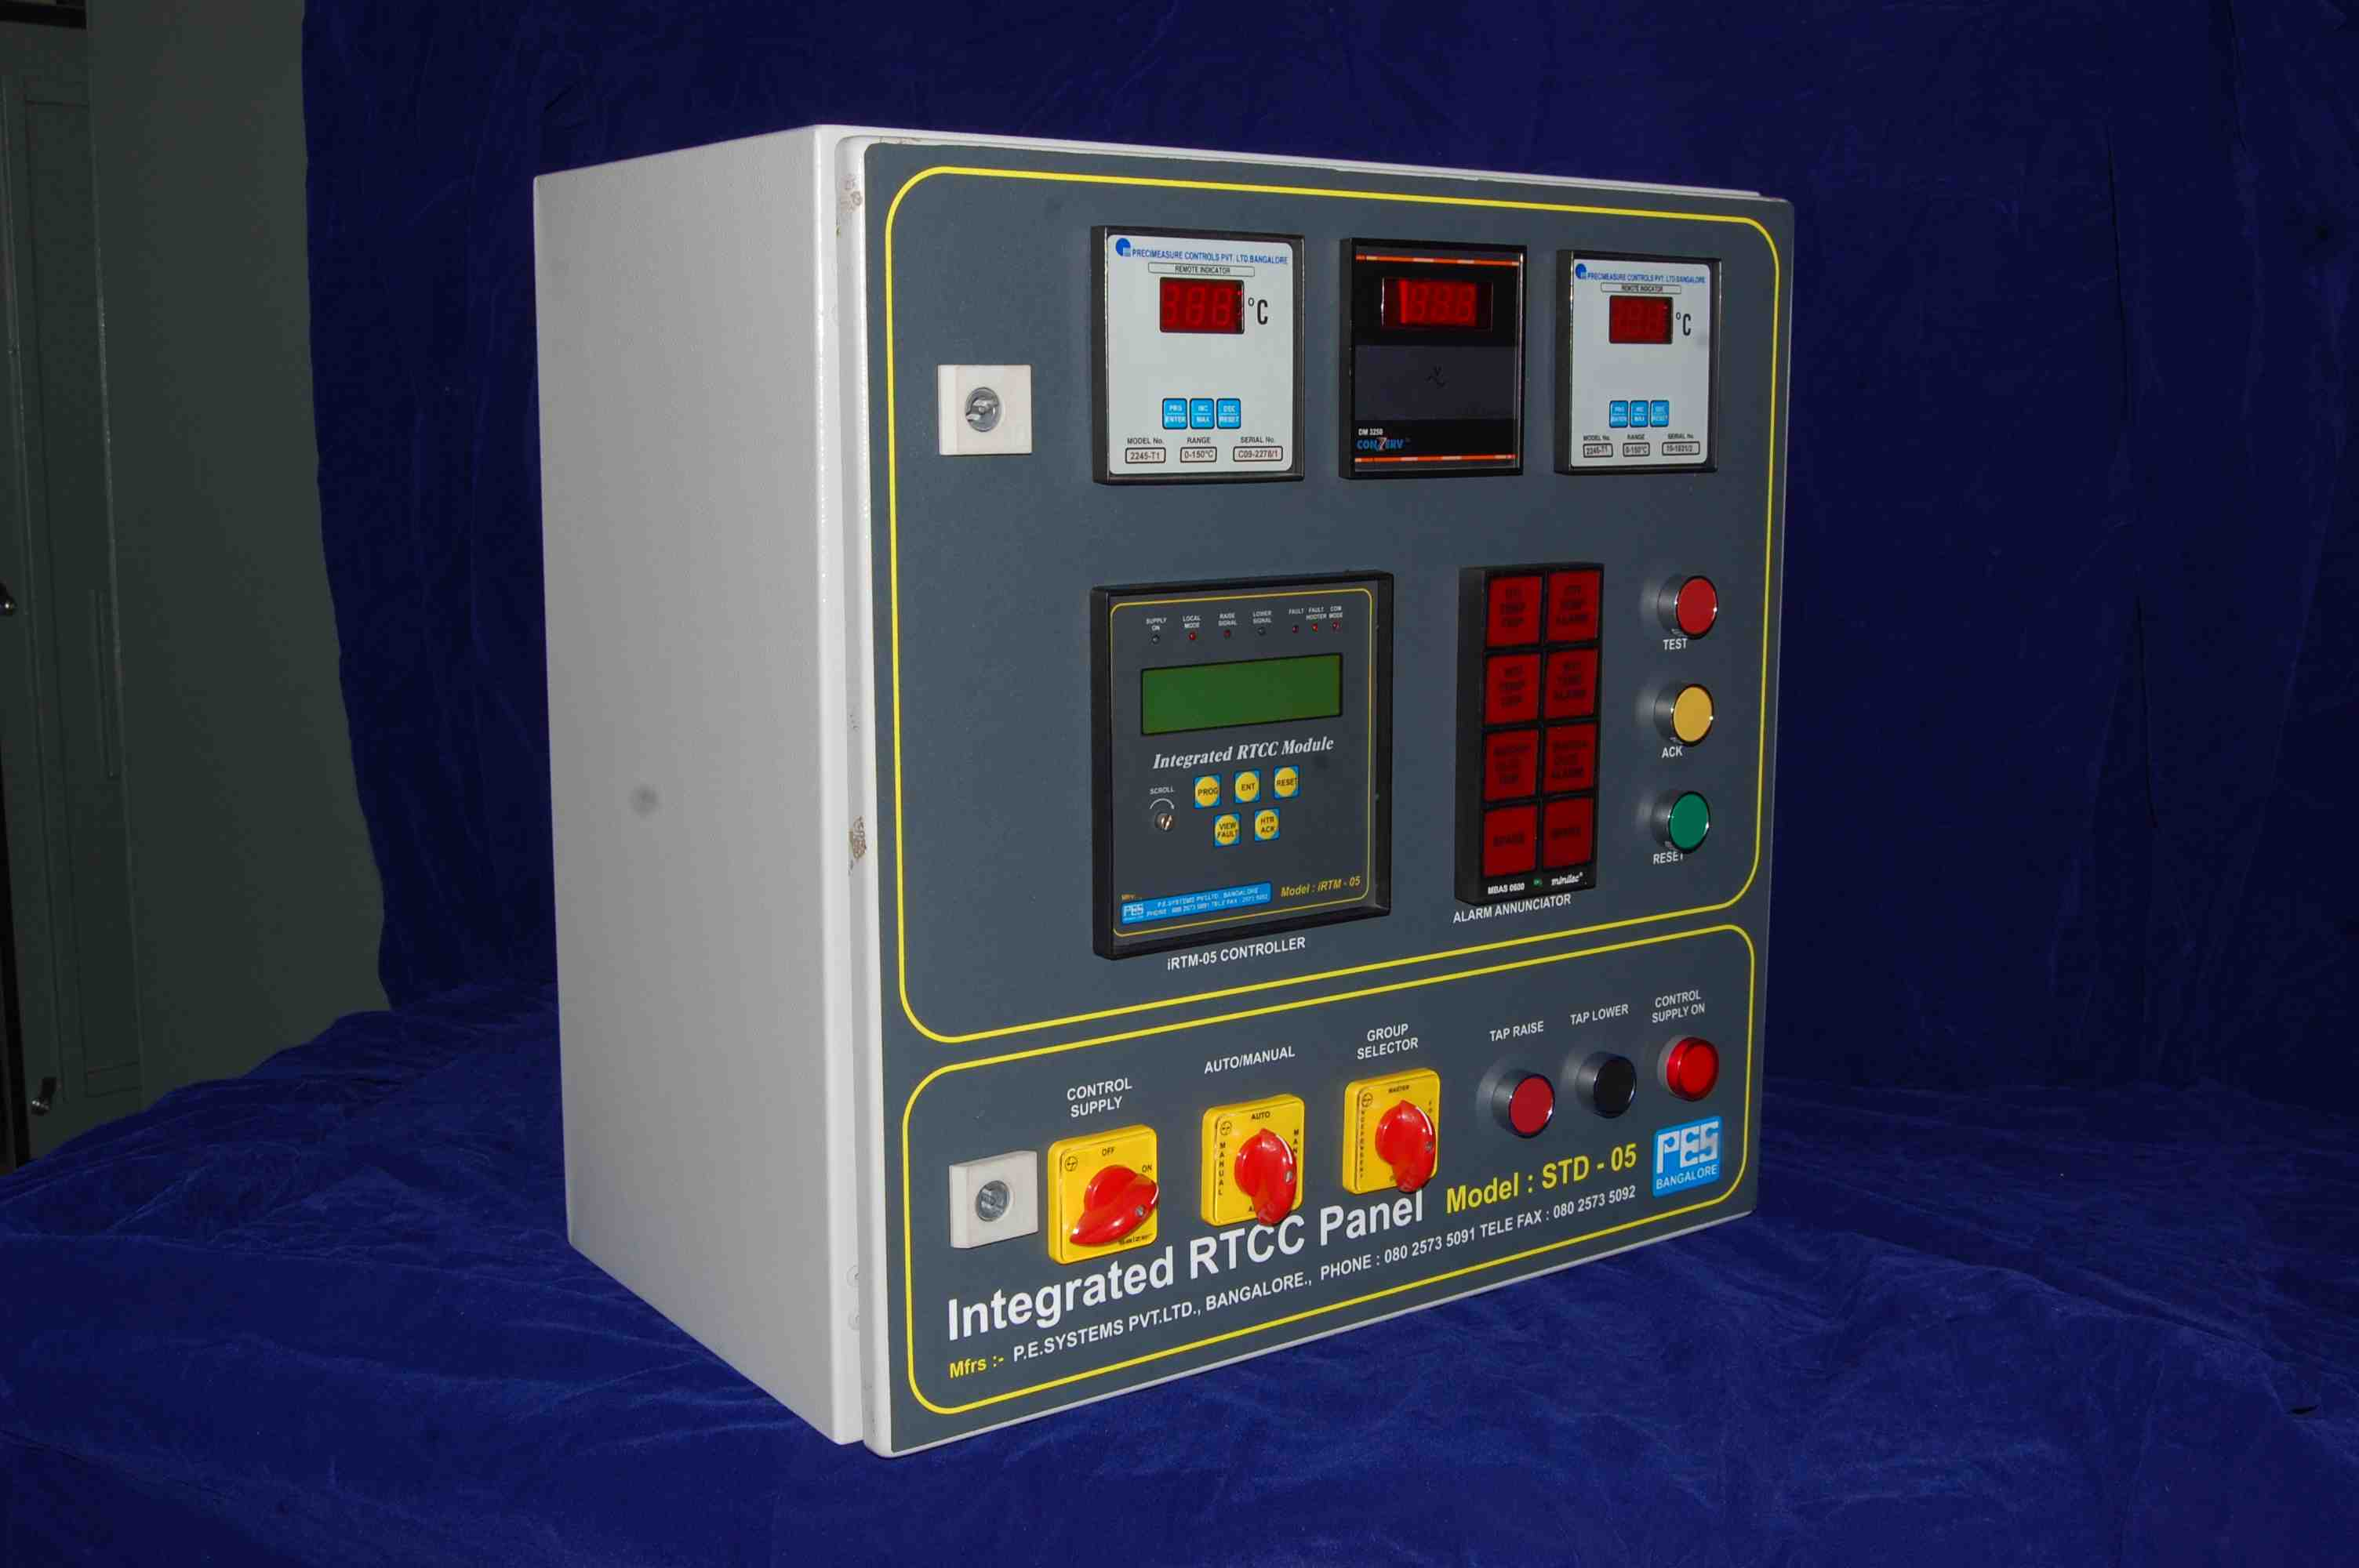 P.E Systems on grounding diagram, assembly diagram, panel wiring icon, troubleshooting diagram, electricians diagram, rslogix diagram, installation diagram, plc diagram, instrumentation diagram, solar panels diagram, telecommunications diagram, drilling diagram,